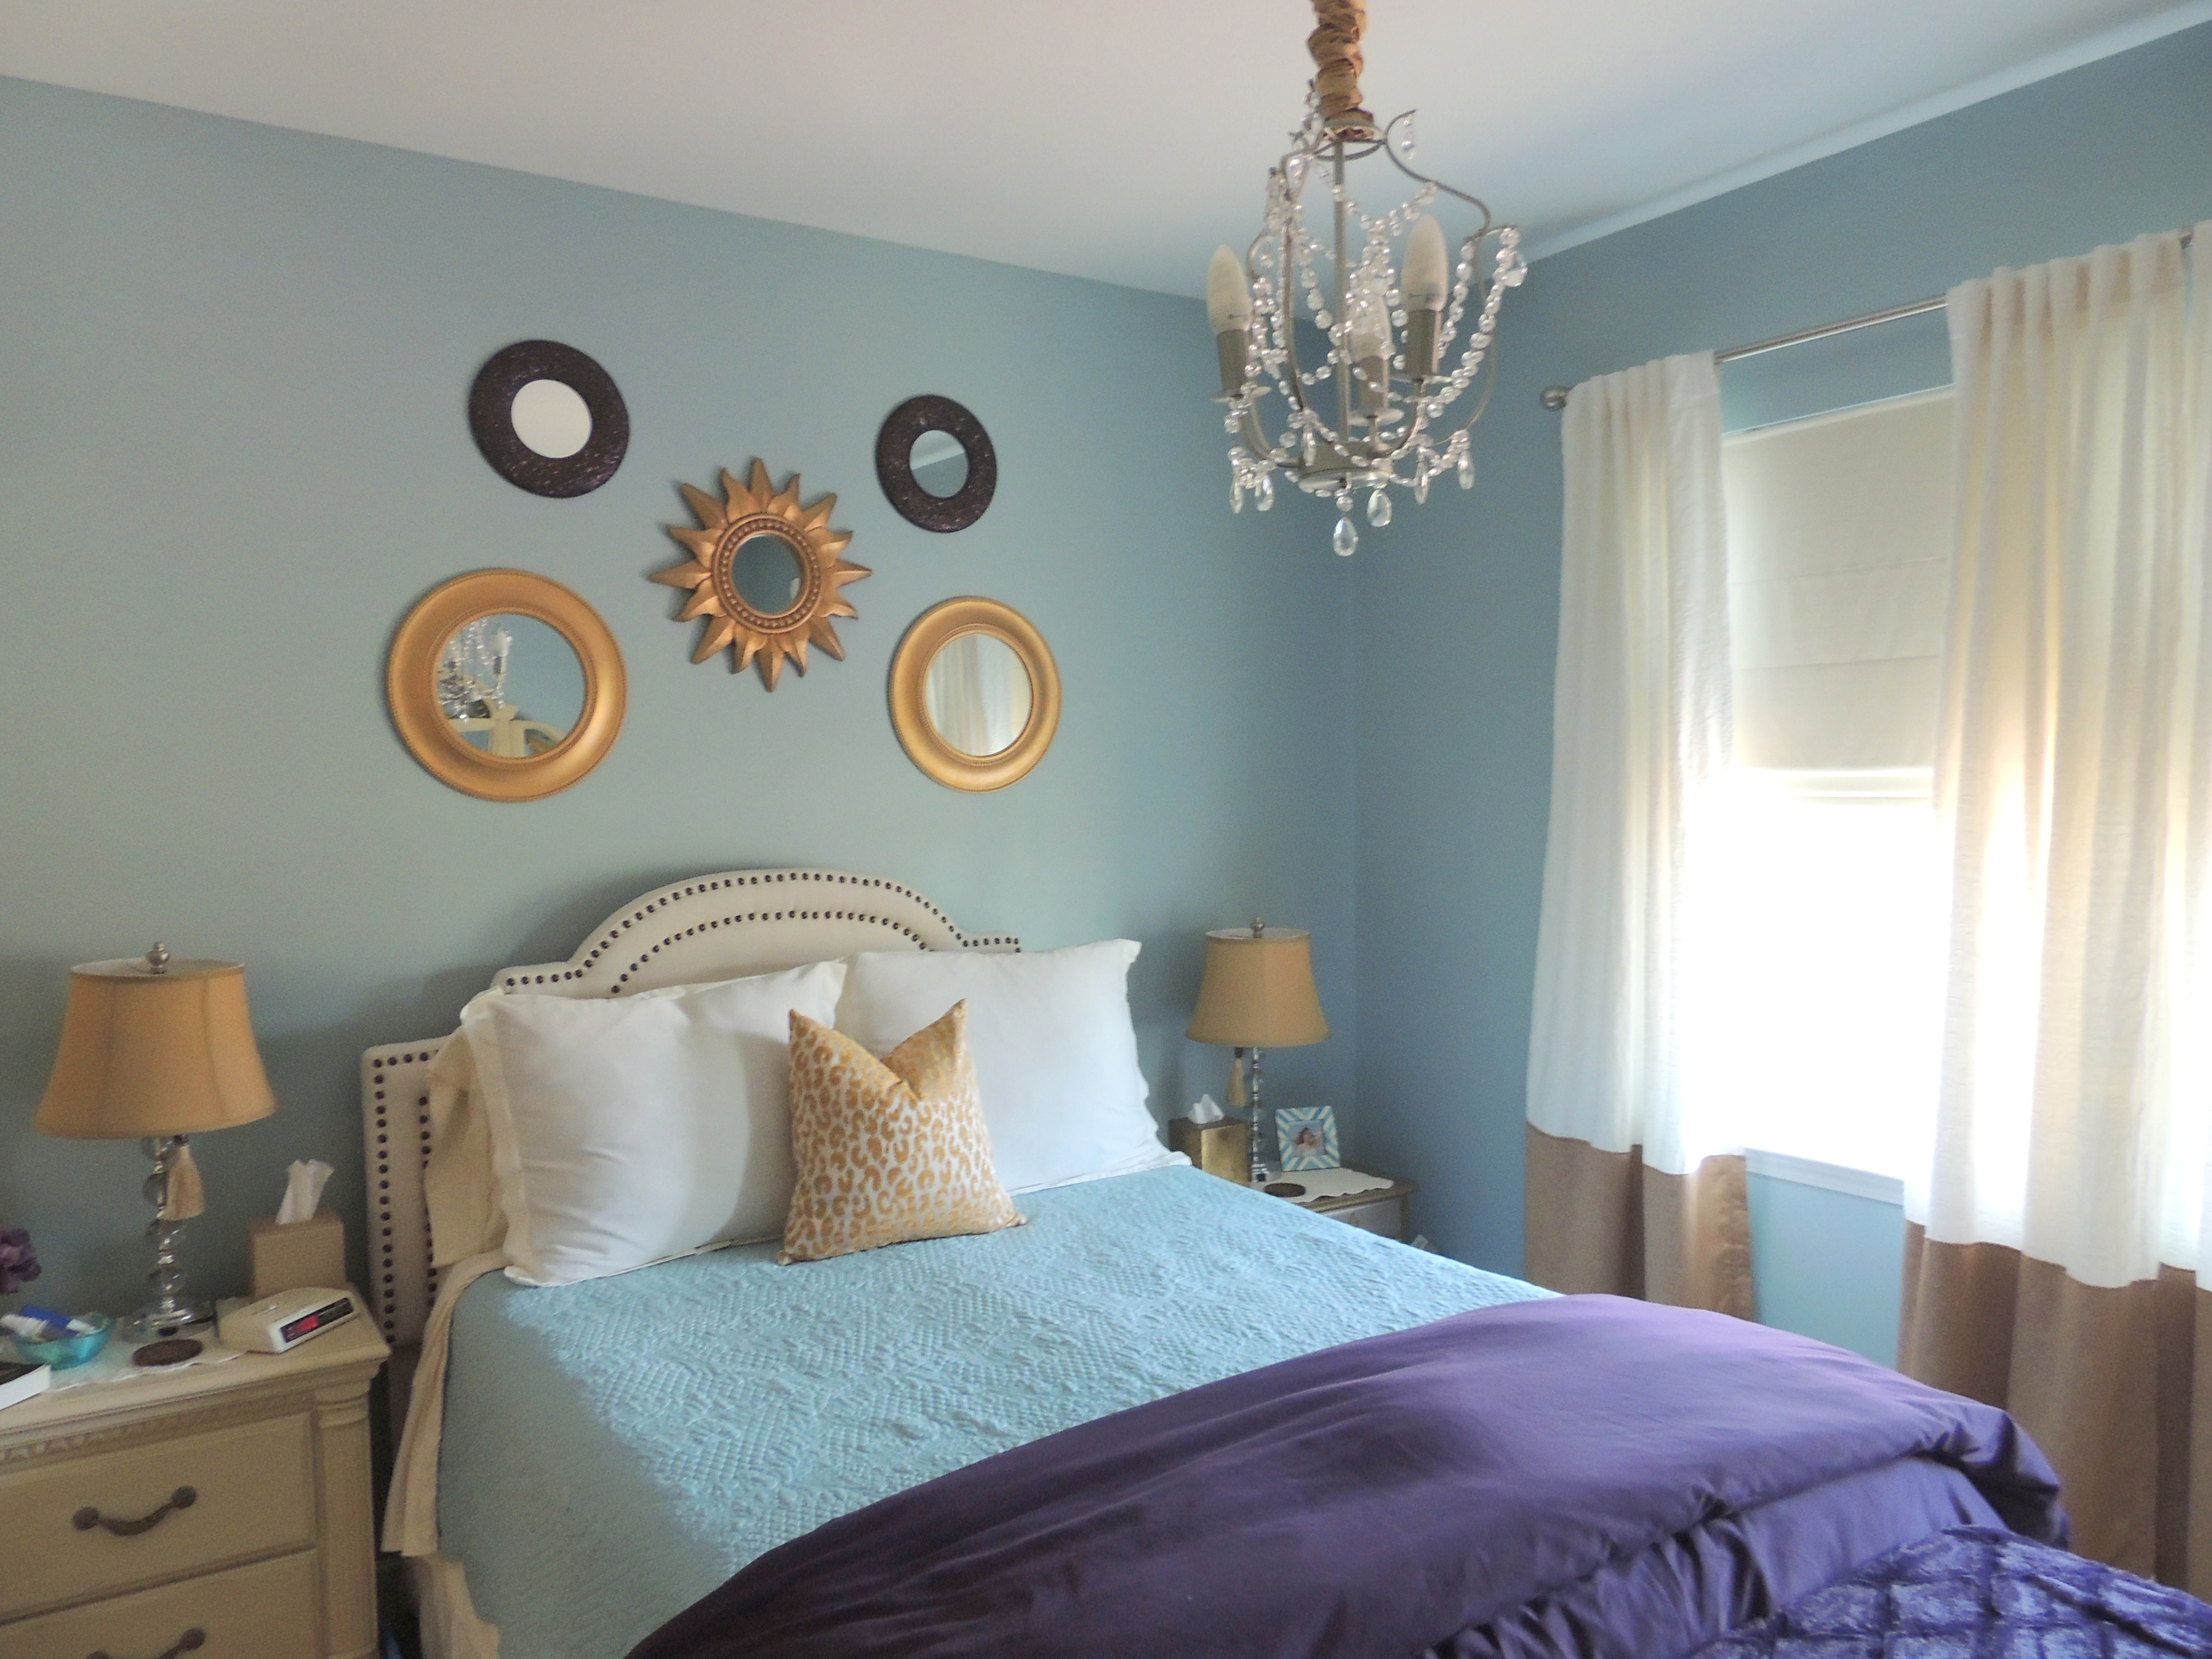 Studio reed jonathan reed s spare crafted interior design - Home Interior Design Coach Rooms